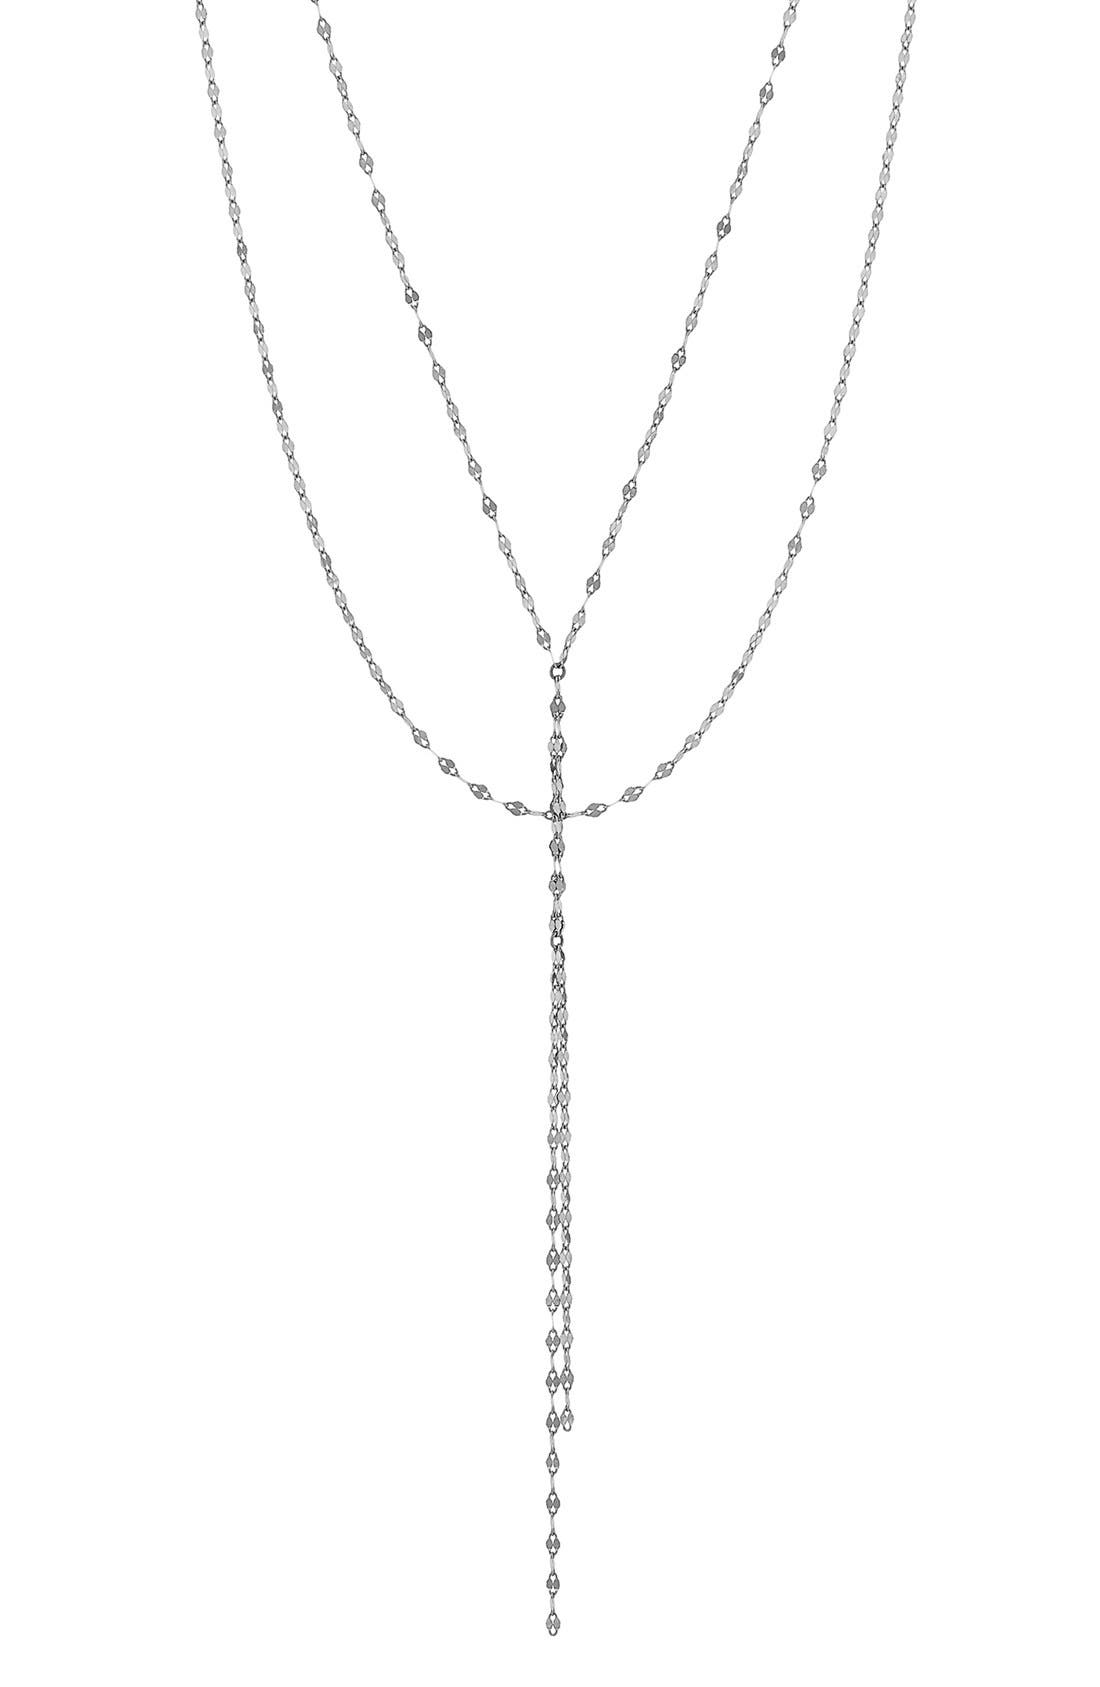 Alternate Image 1 Selected - Lana Jewelry 'Blake' Lariat Necklace